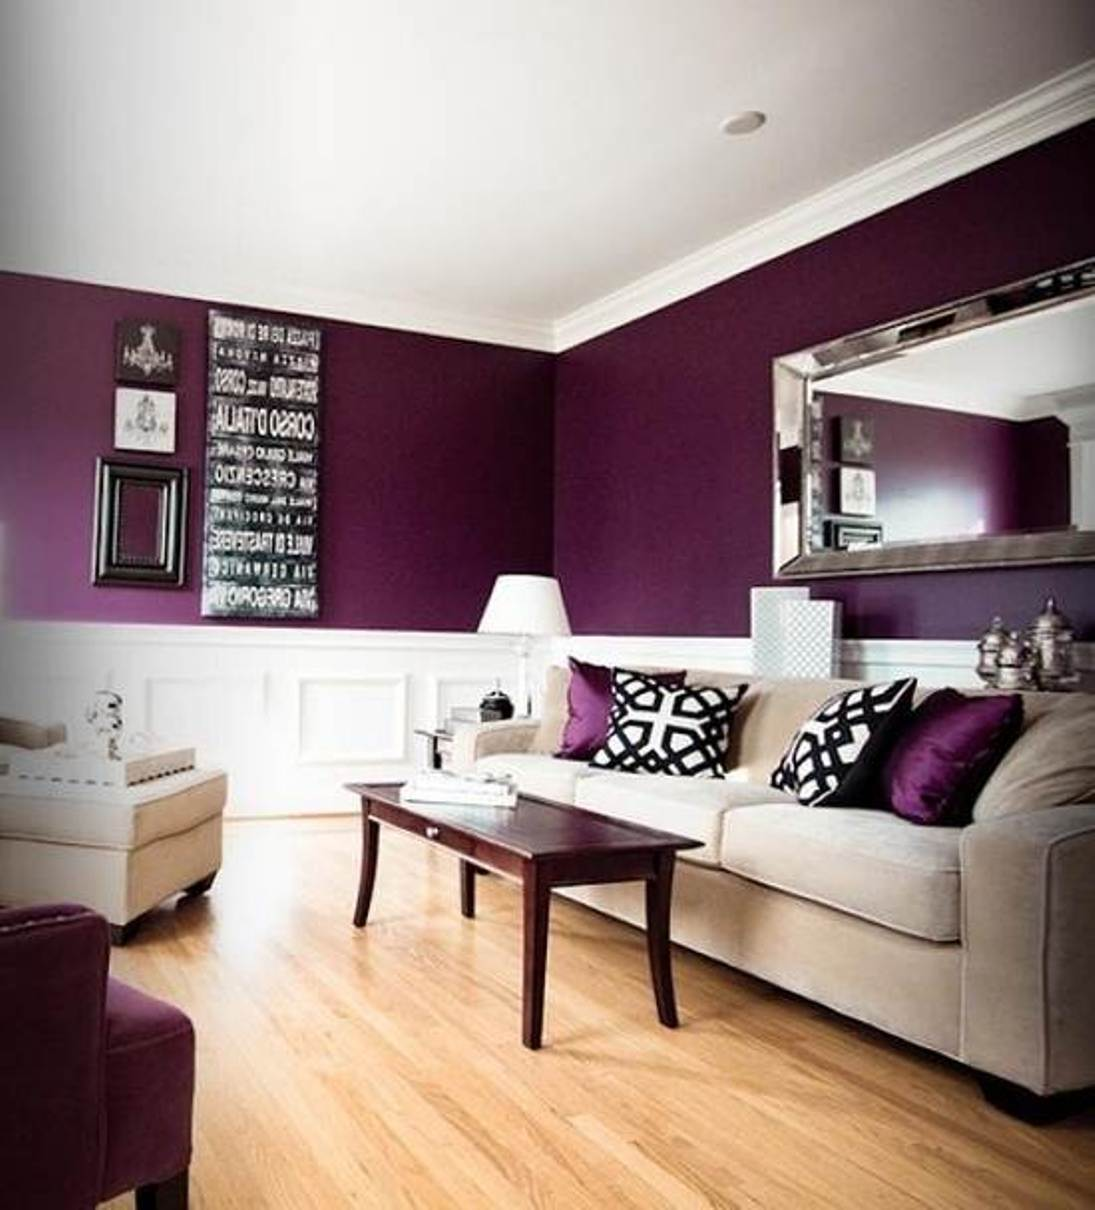 wohnzimmer lila weiß:Purple Living Room Color Ideas